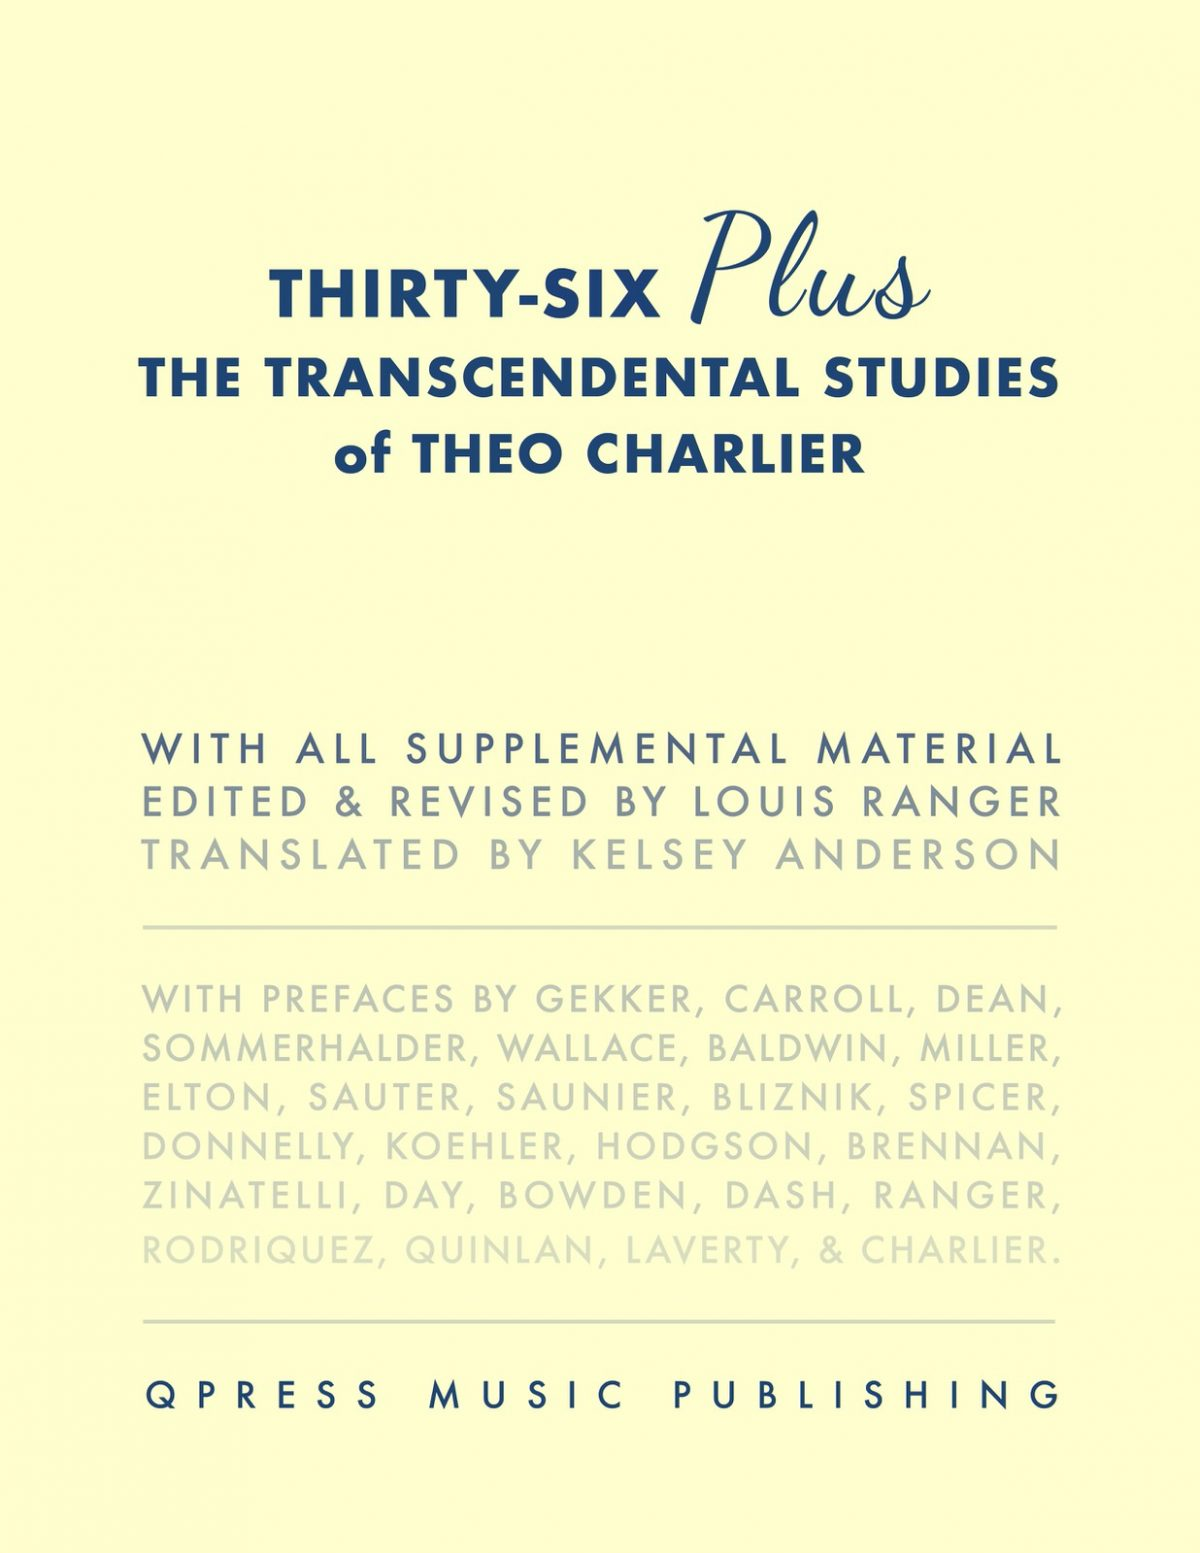 Charlier, 36 Transcendental Studies PLUS-p001